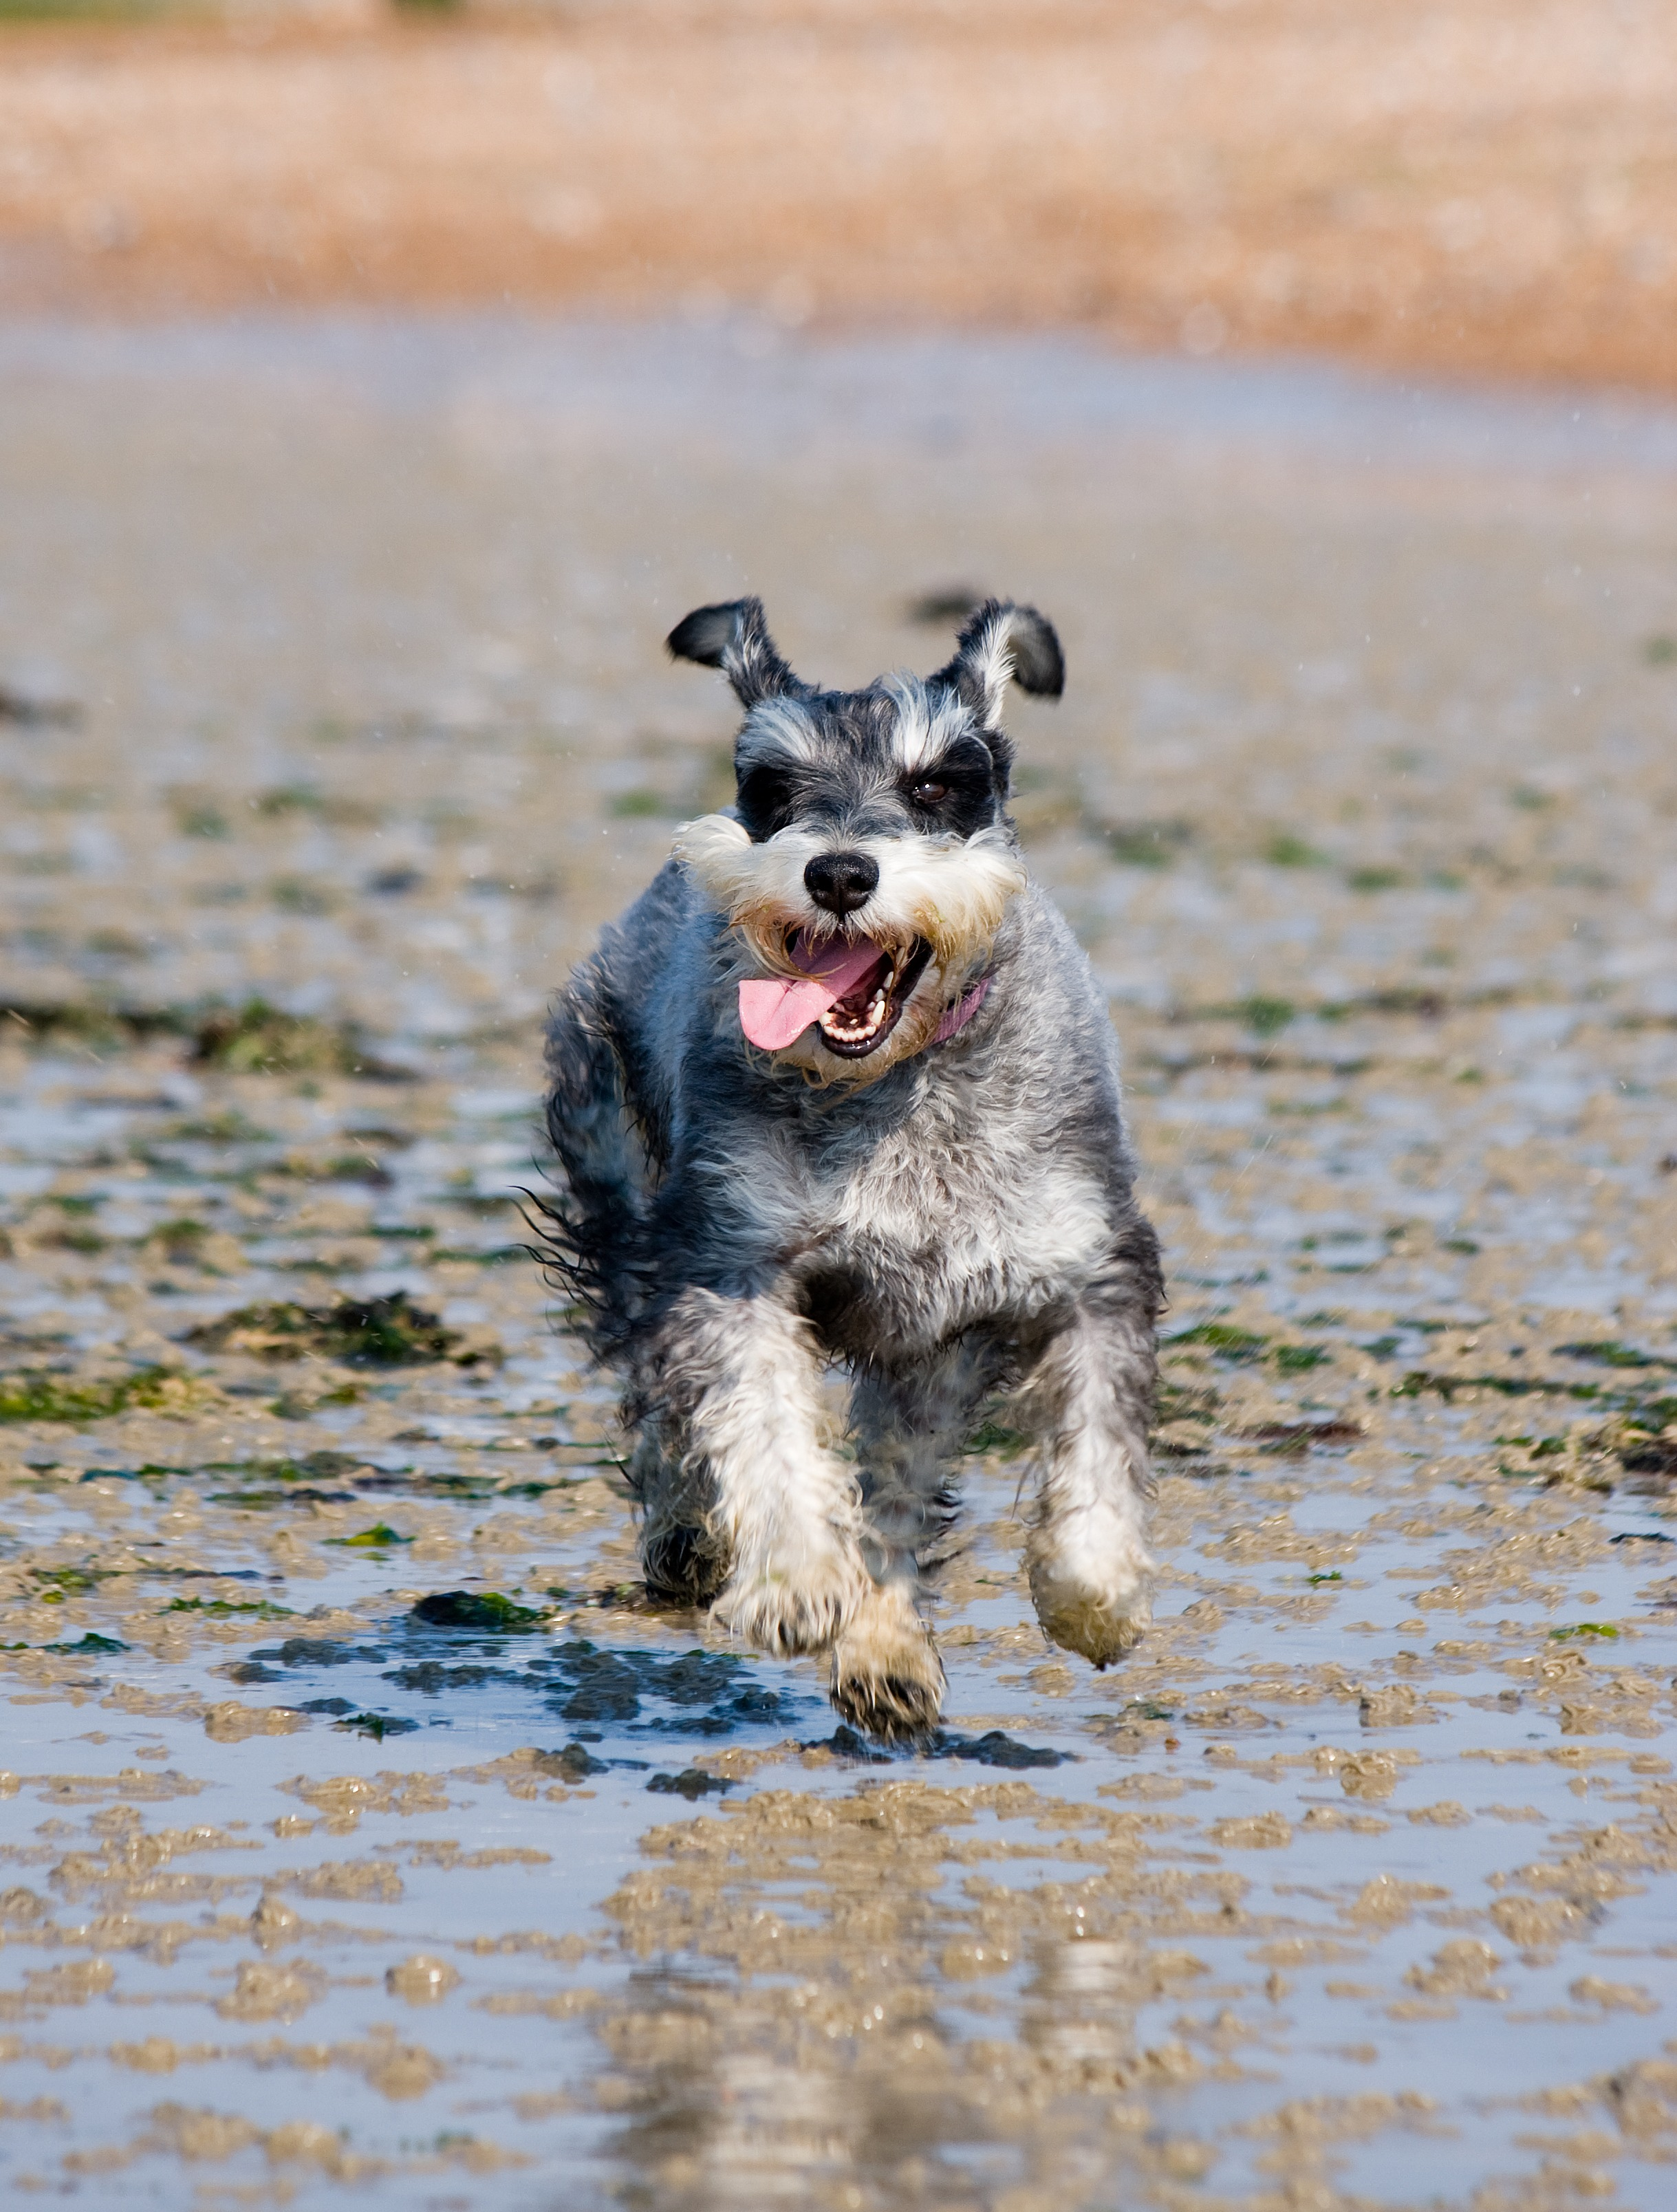 Cute Dog Pictures For Wallpaper Salt And Pepper Miniature Schnauzer Running On Wet Sand